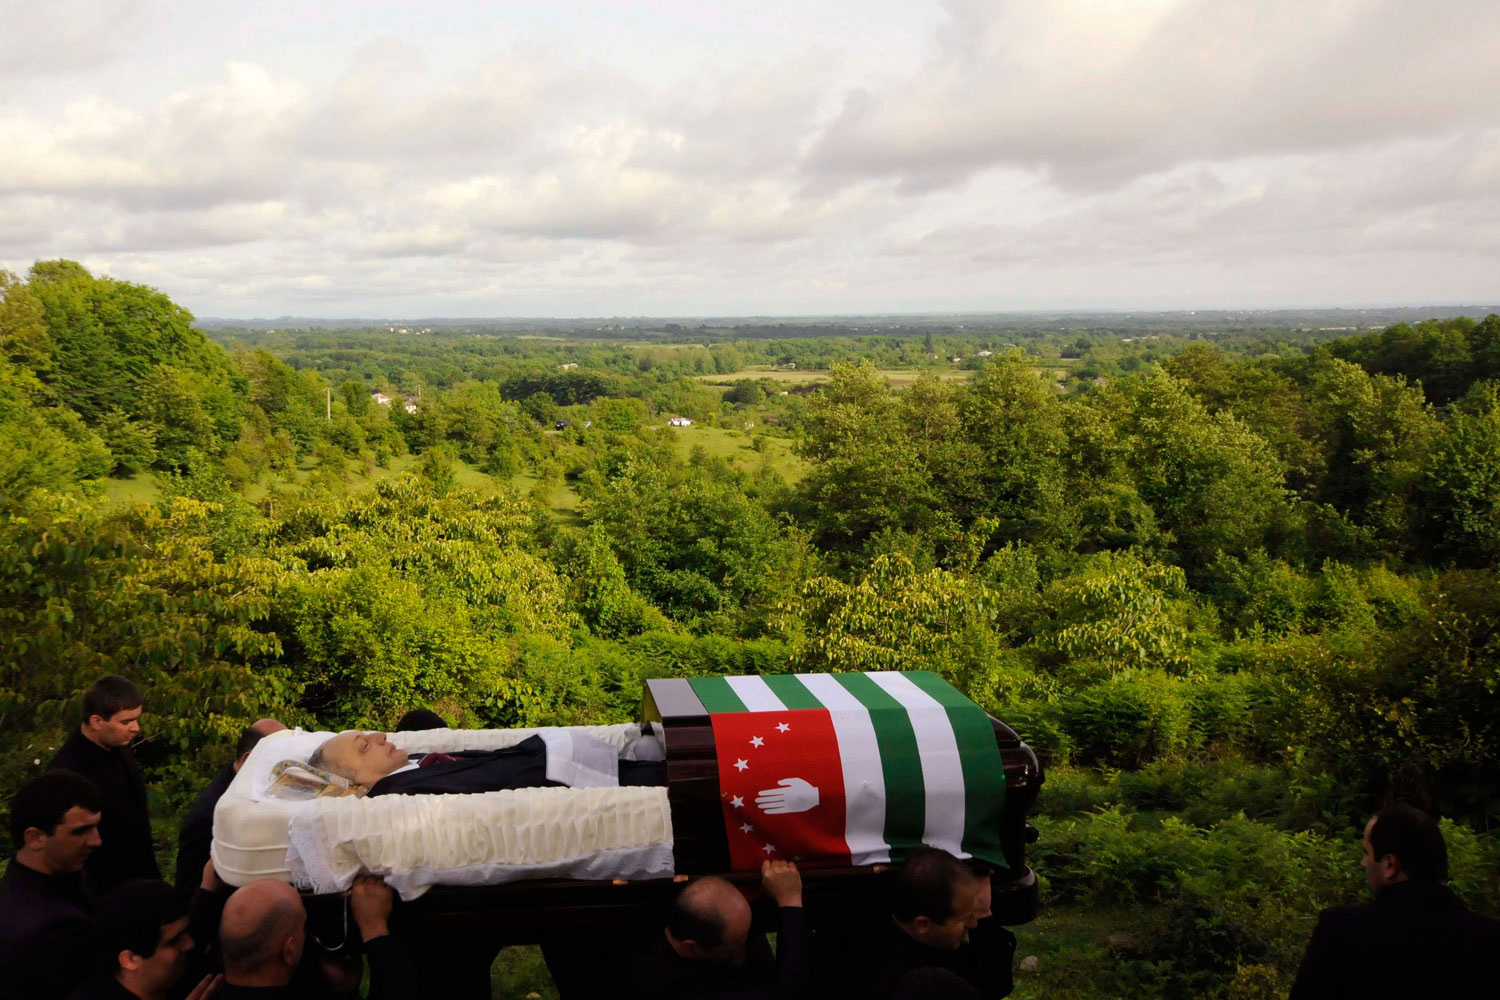 June 2, 2011. Pall bearers carry the open coffin of Abkhazia's president Sergei Bagapsh to his funeral in the village of Dzhgiarda.